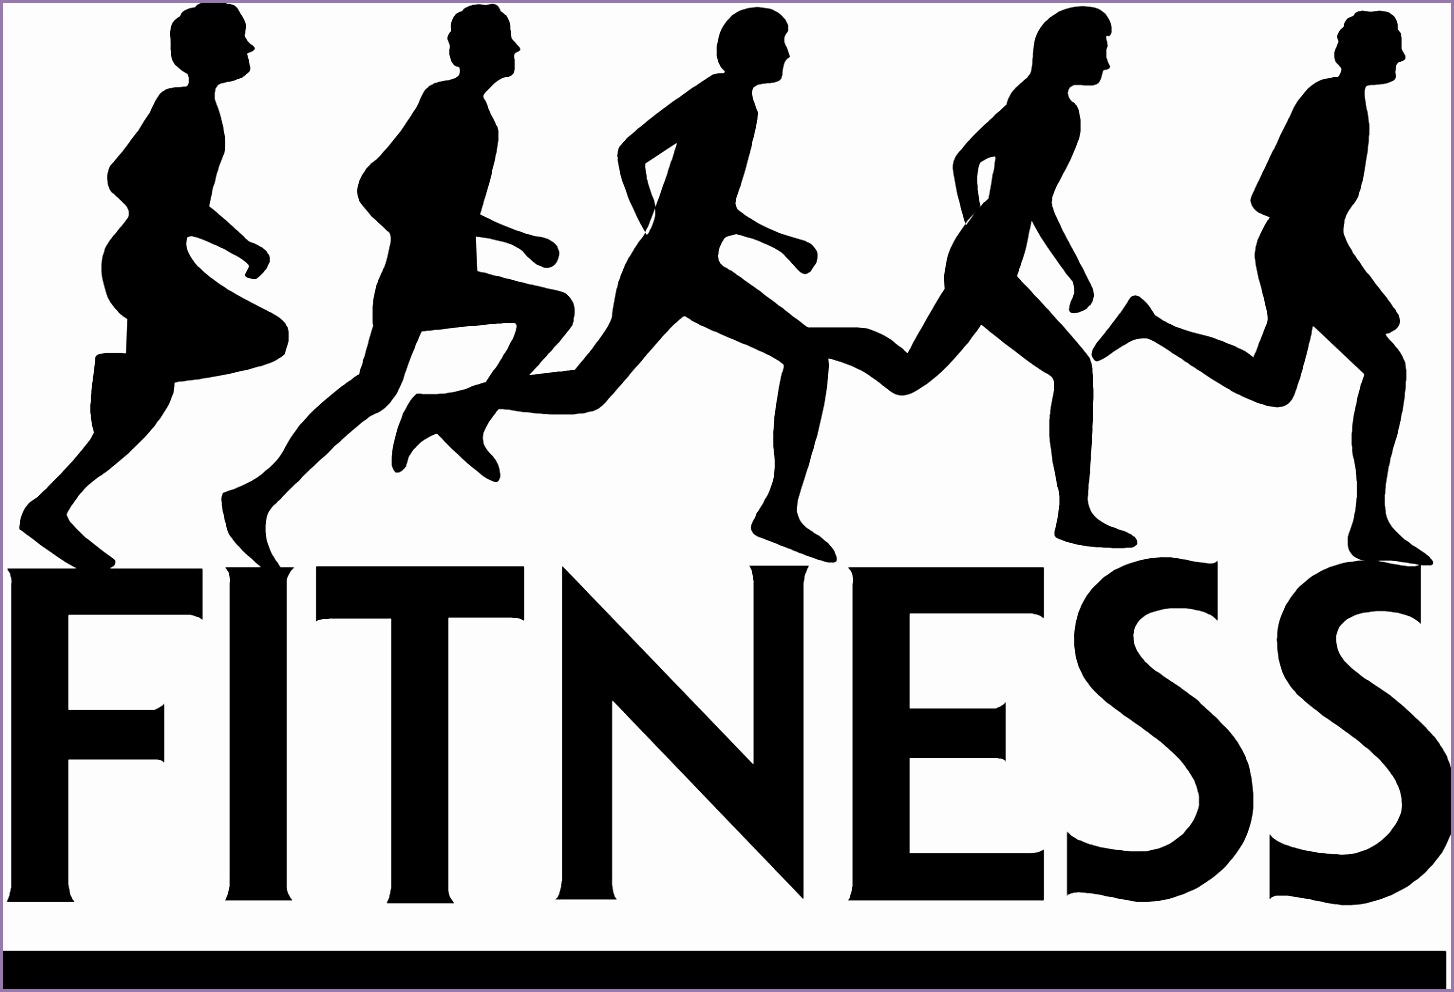 Personal Fitness Clipart Zkjnqn Best Of Family Fitness Cliparts Free Download Clip Art